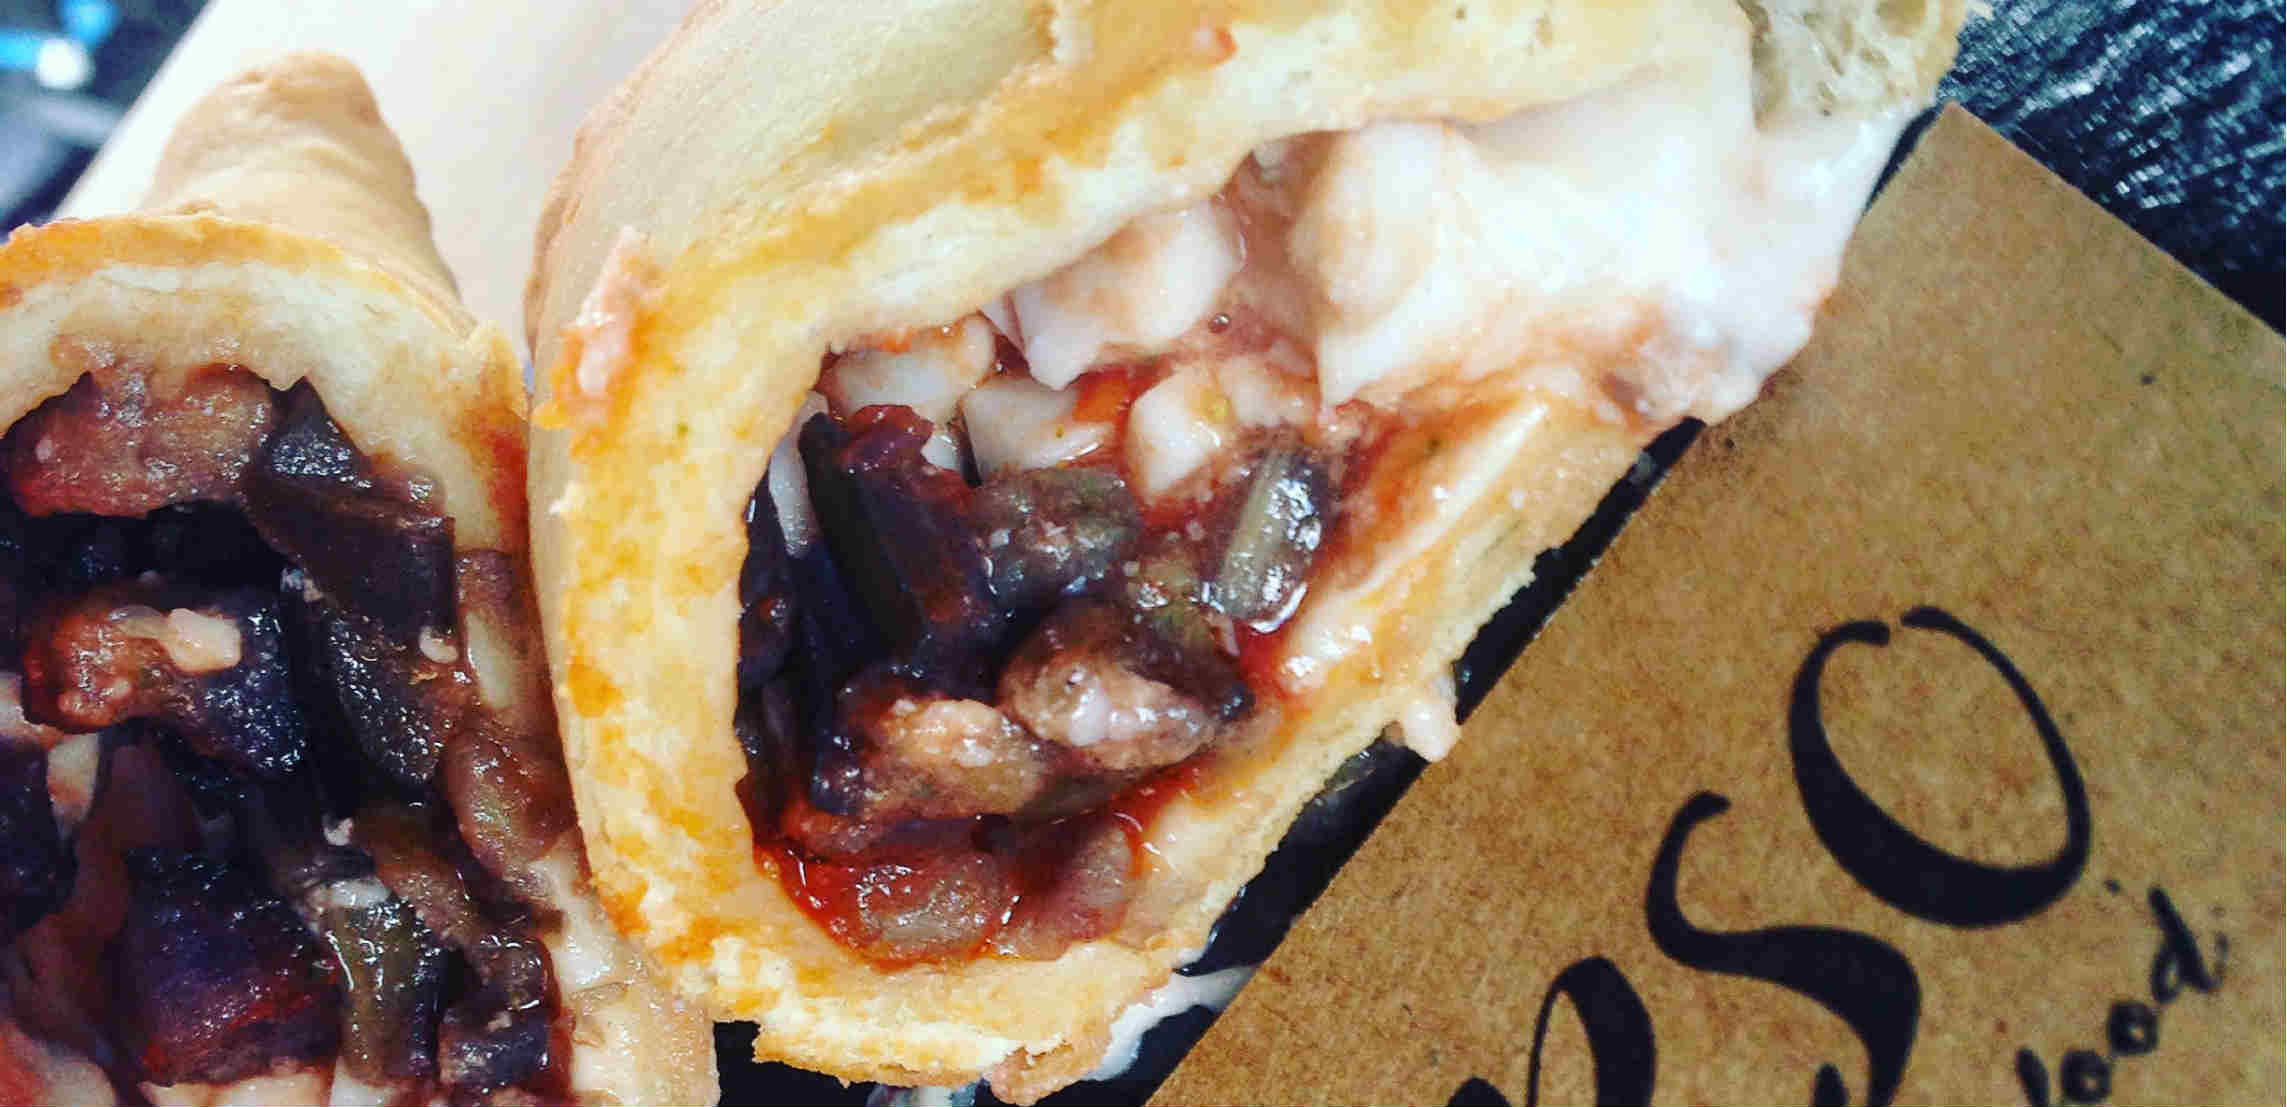 Glorious vegan calzone comes to London